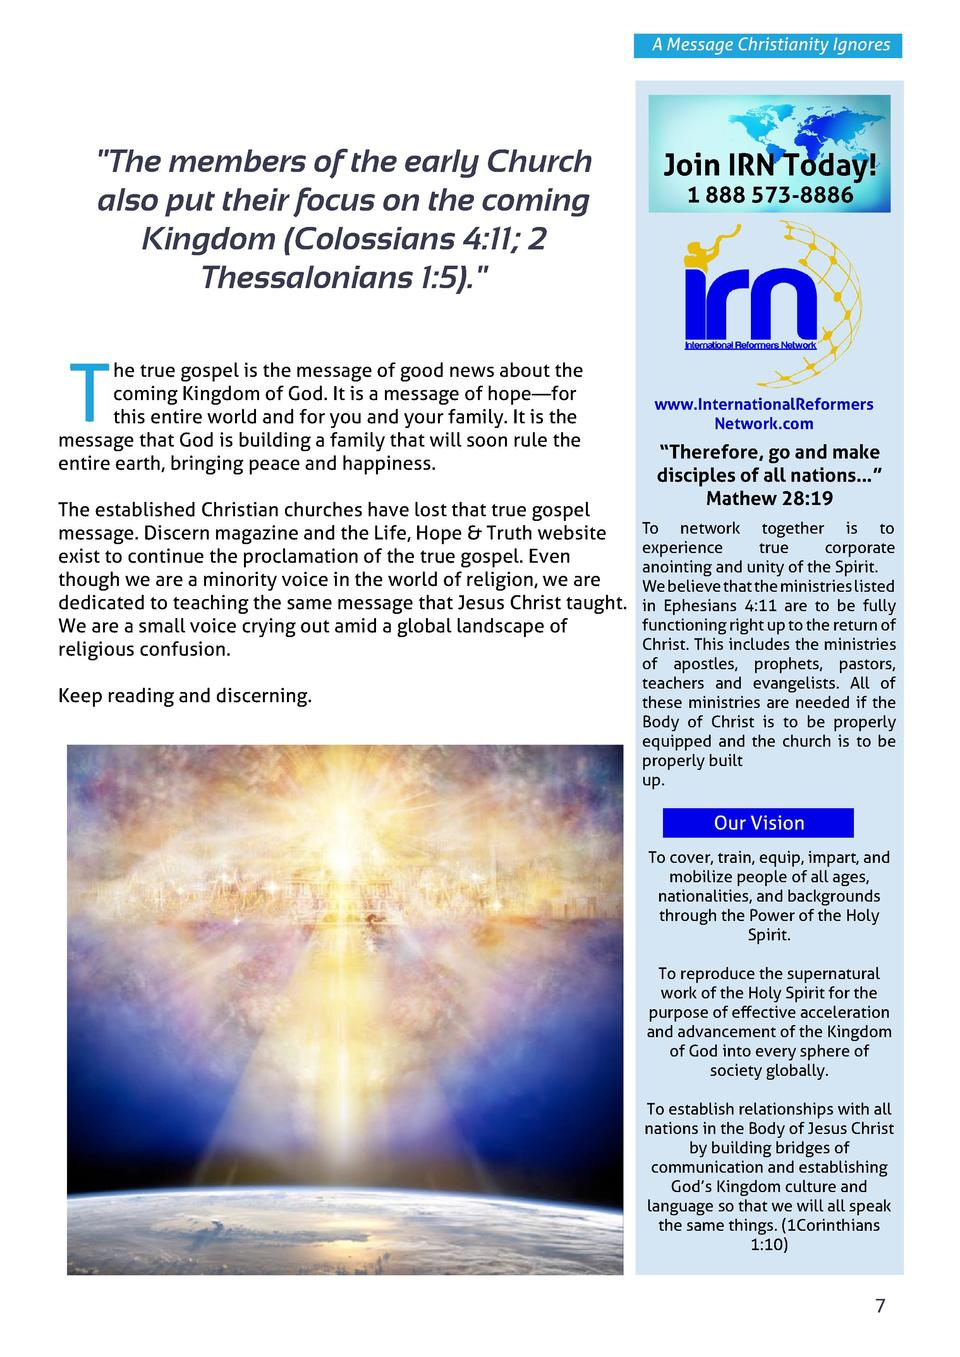 A Message Christianity Ignores   The members of the early Church also put their focus on the coming Kingdom  Colossians 4 ...